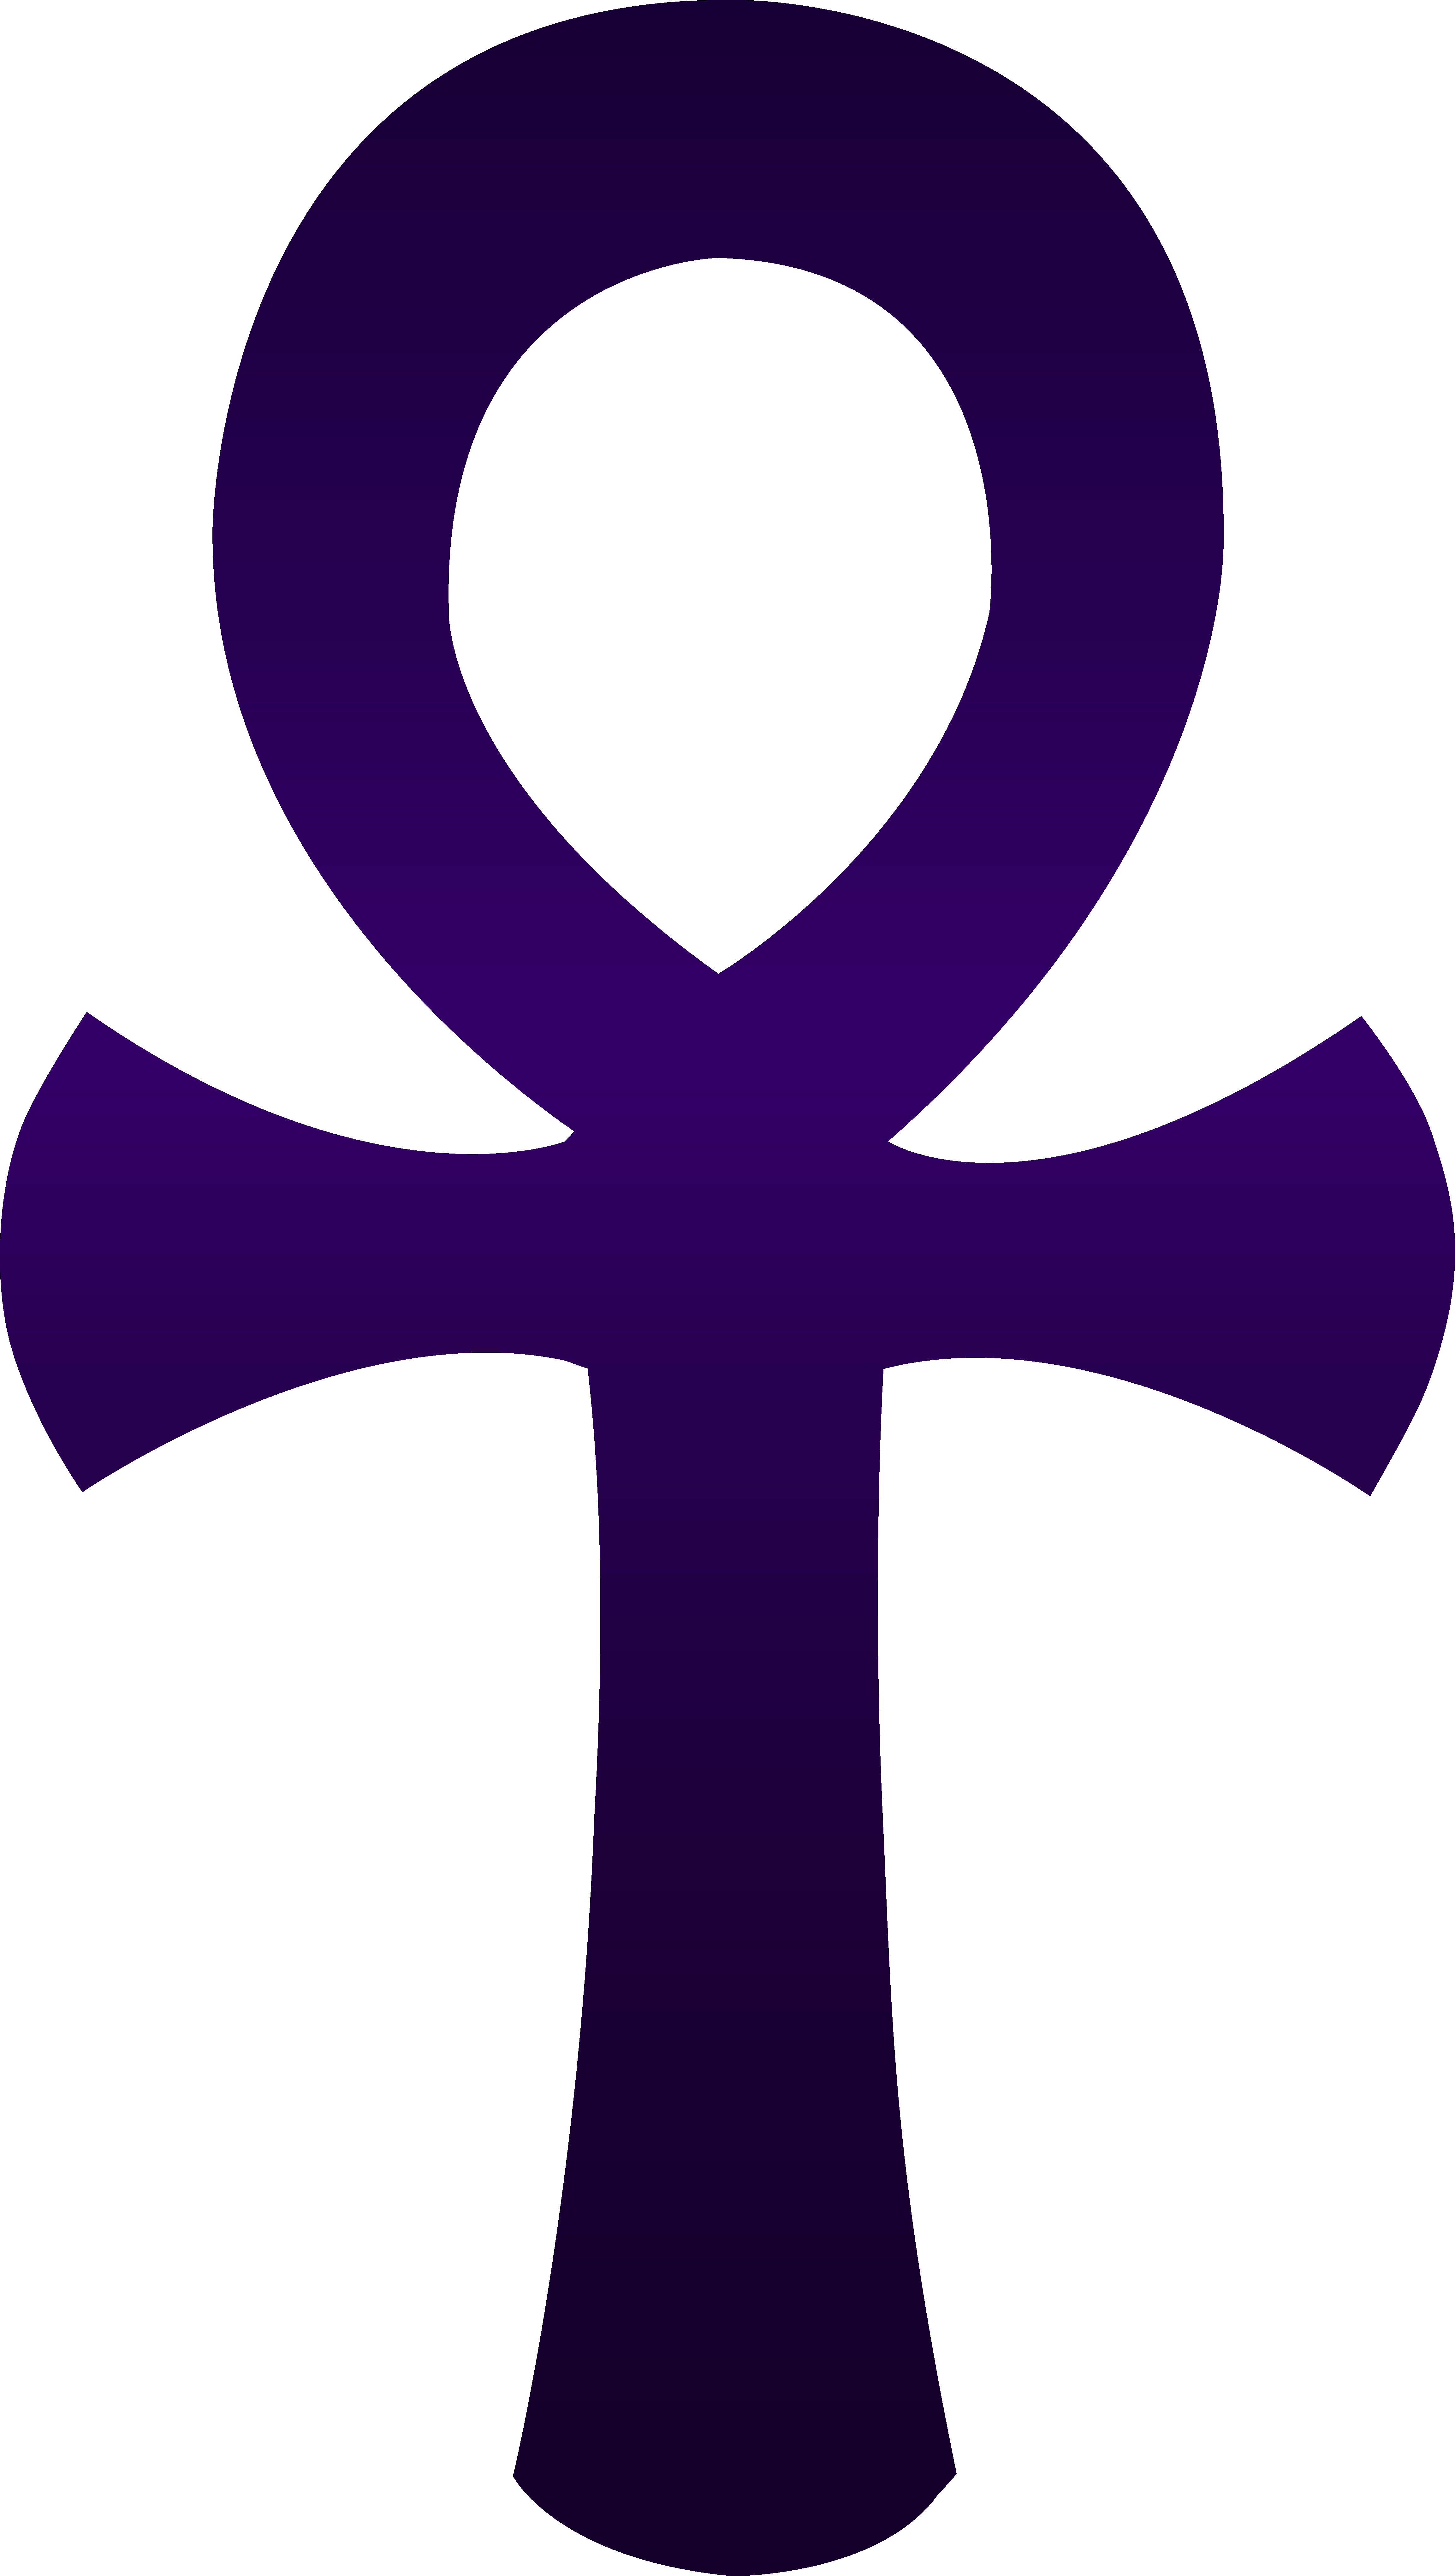 Cross of protection clipart banner royalty free library ankh_violet.png (4610×8162) | Анх | Pinterest banner royalty free library